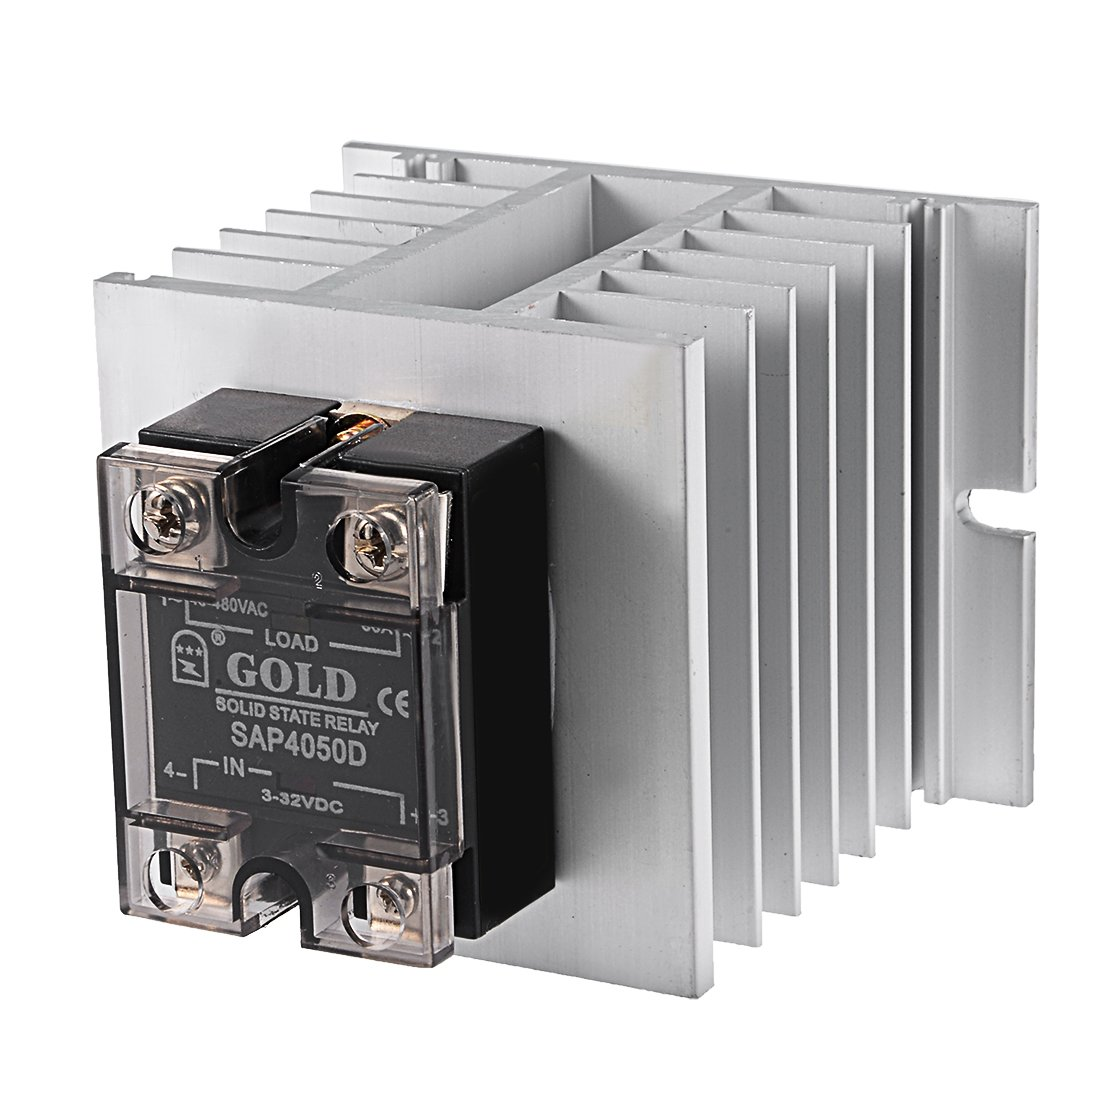 uxcell SAP4090D 3-32VDC to 40-480VAC 90A Single Phase Solid State Relay Module DC to AC a18032100ux0042